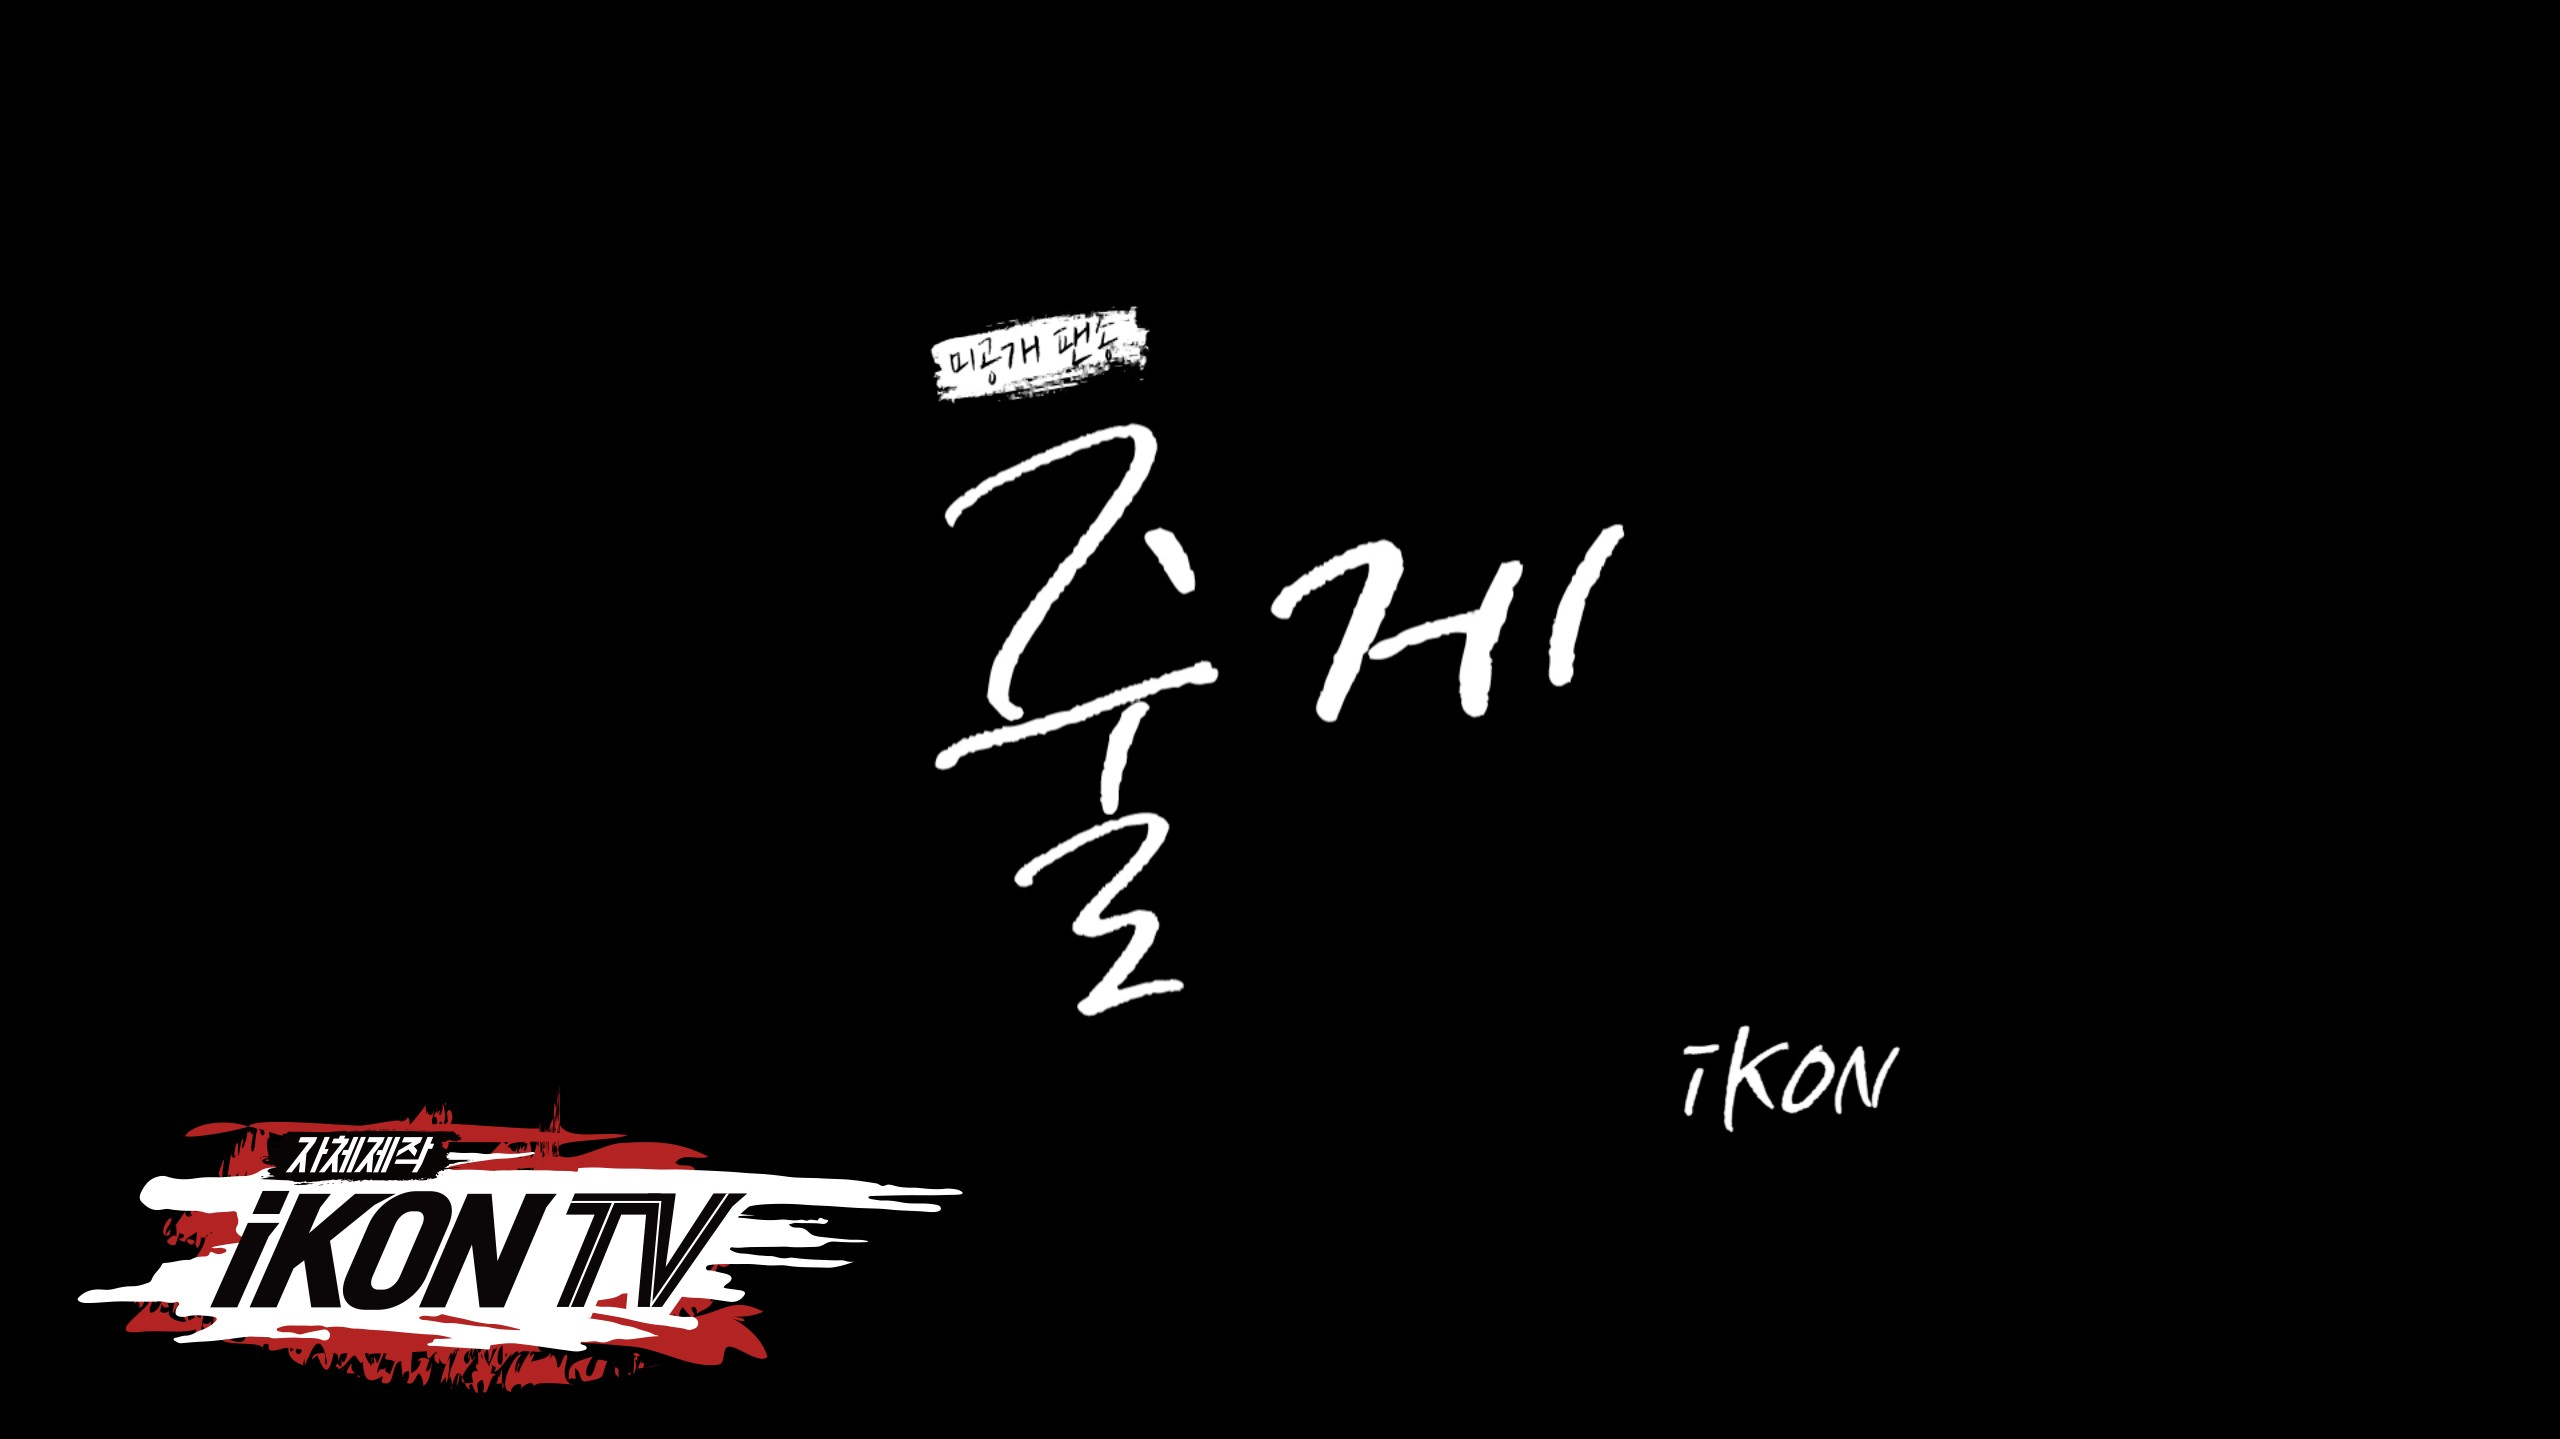 iKON - '자체제작 iKON TV' Special Fan Song '줄게'